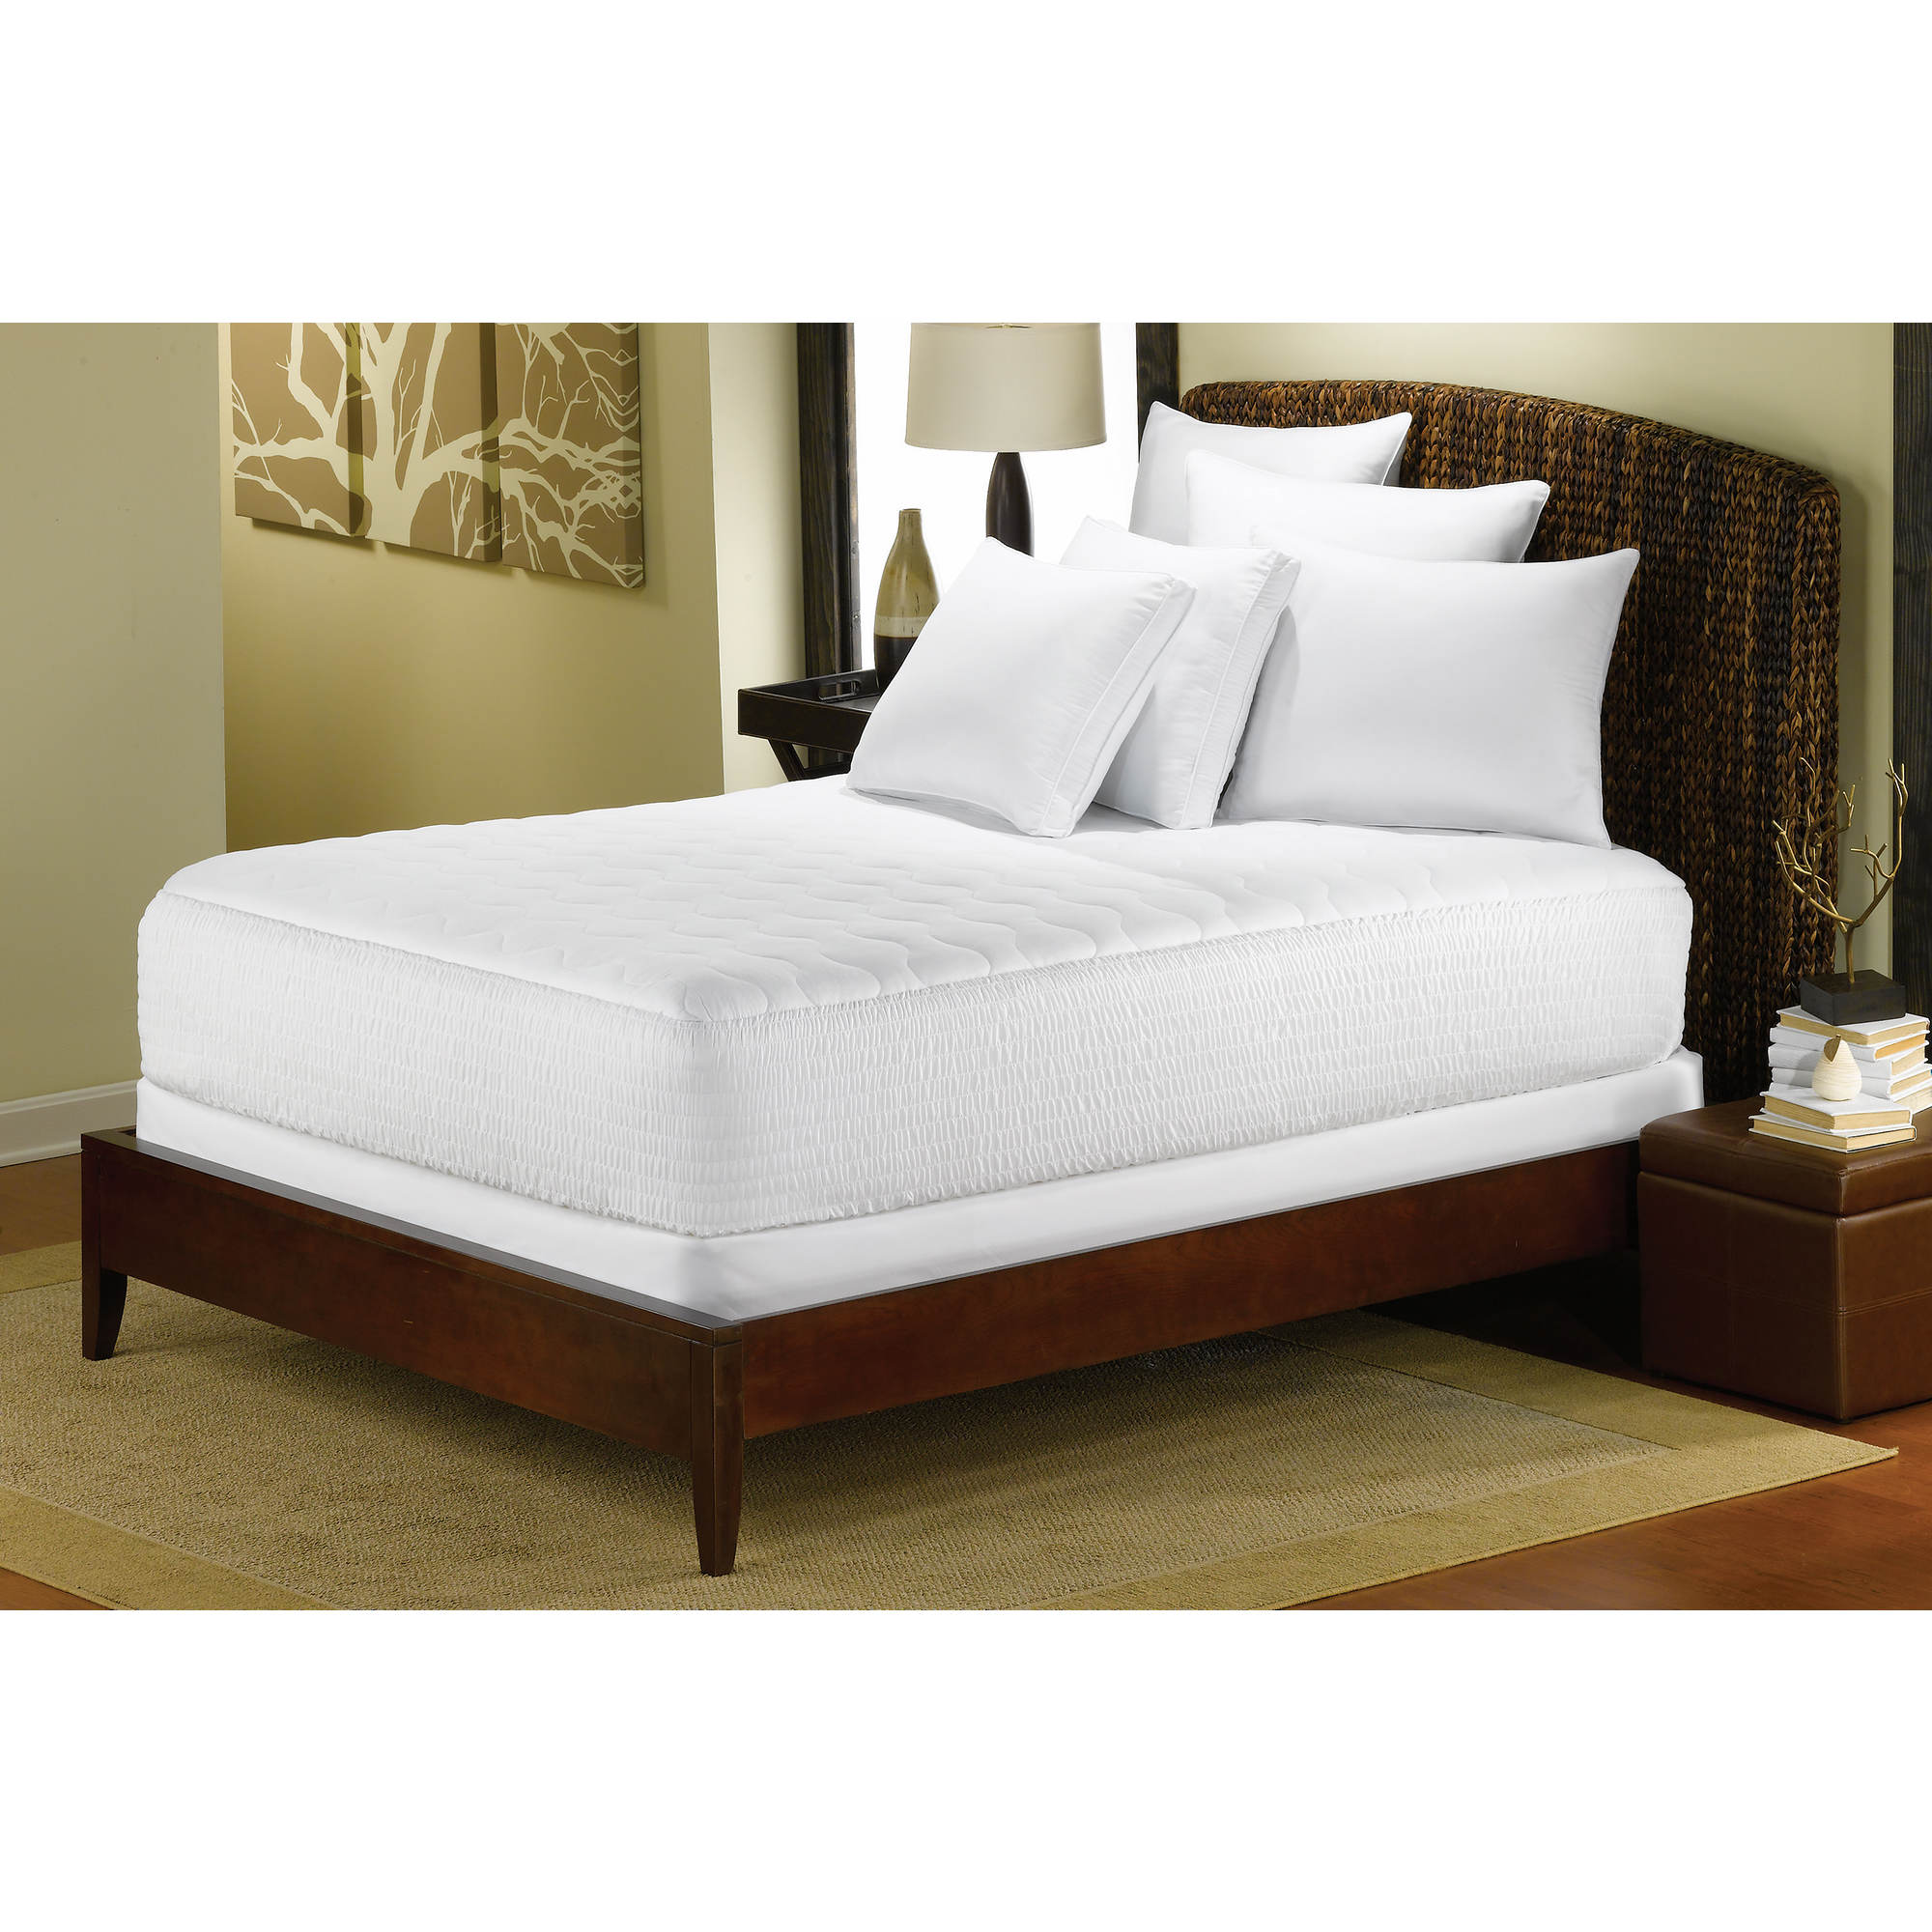 br stella beds aria furniture collections mattress bed